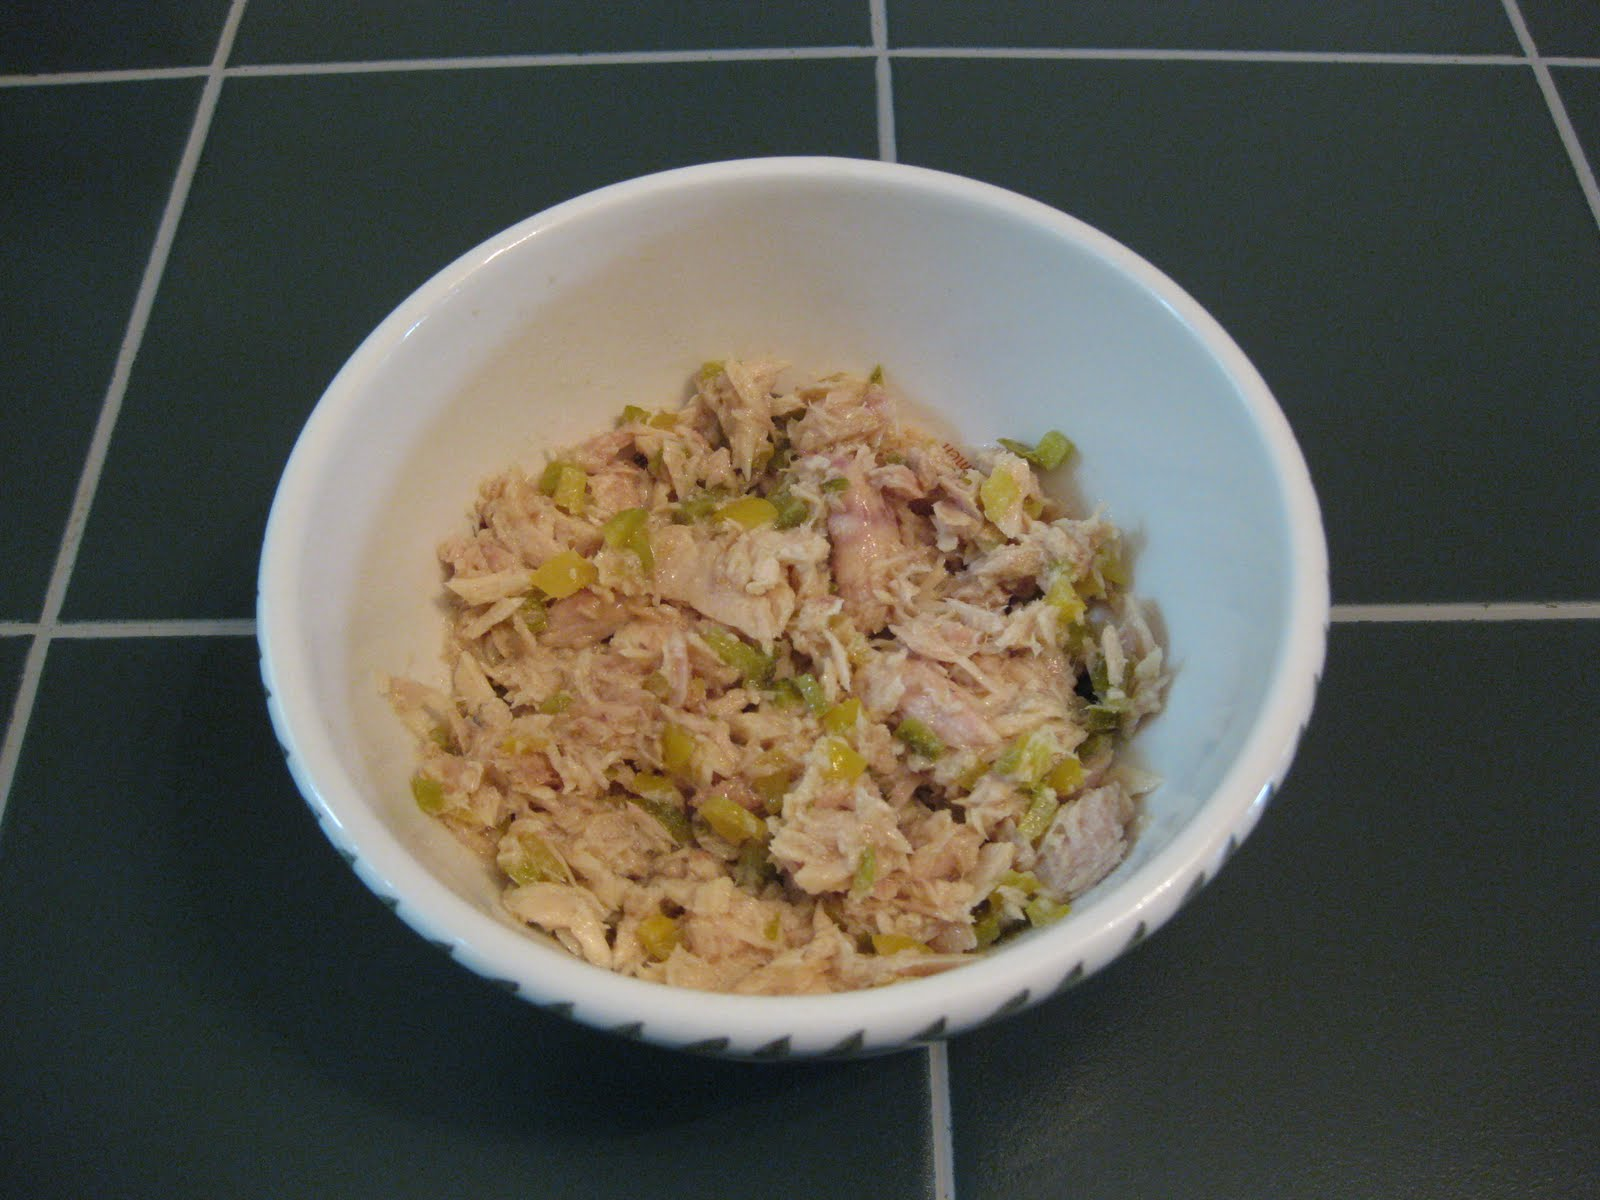 Sensible recipes tuna salad recipe no mayo for Tuna fish salad recipe with egg